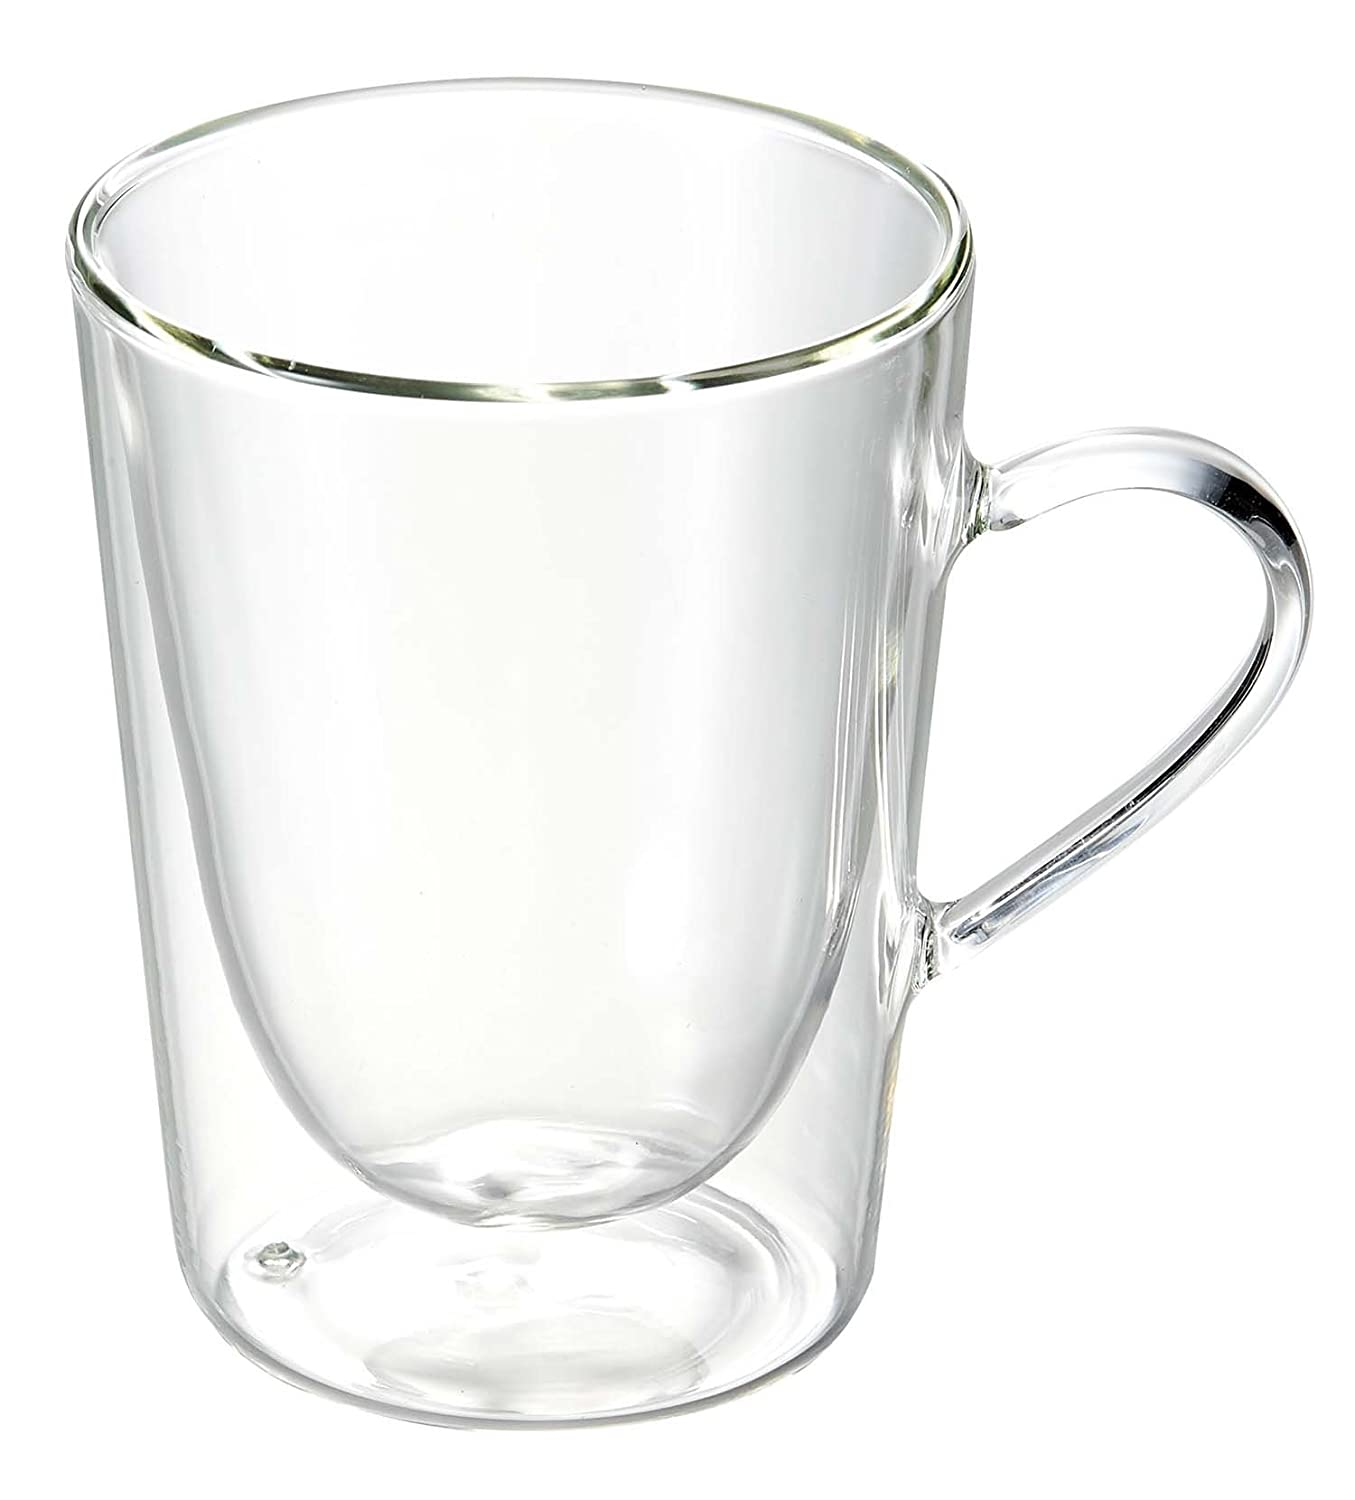 Bredemeijer Coffee and Tea Double Walled Glass, Transparent, 29.5 cl Bredemeijer Group BV 1440